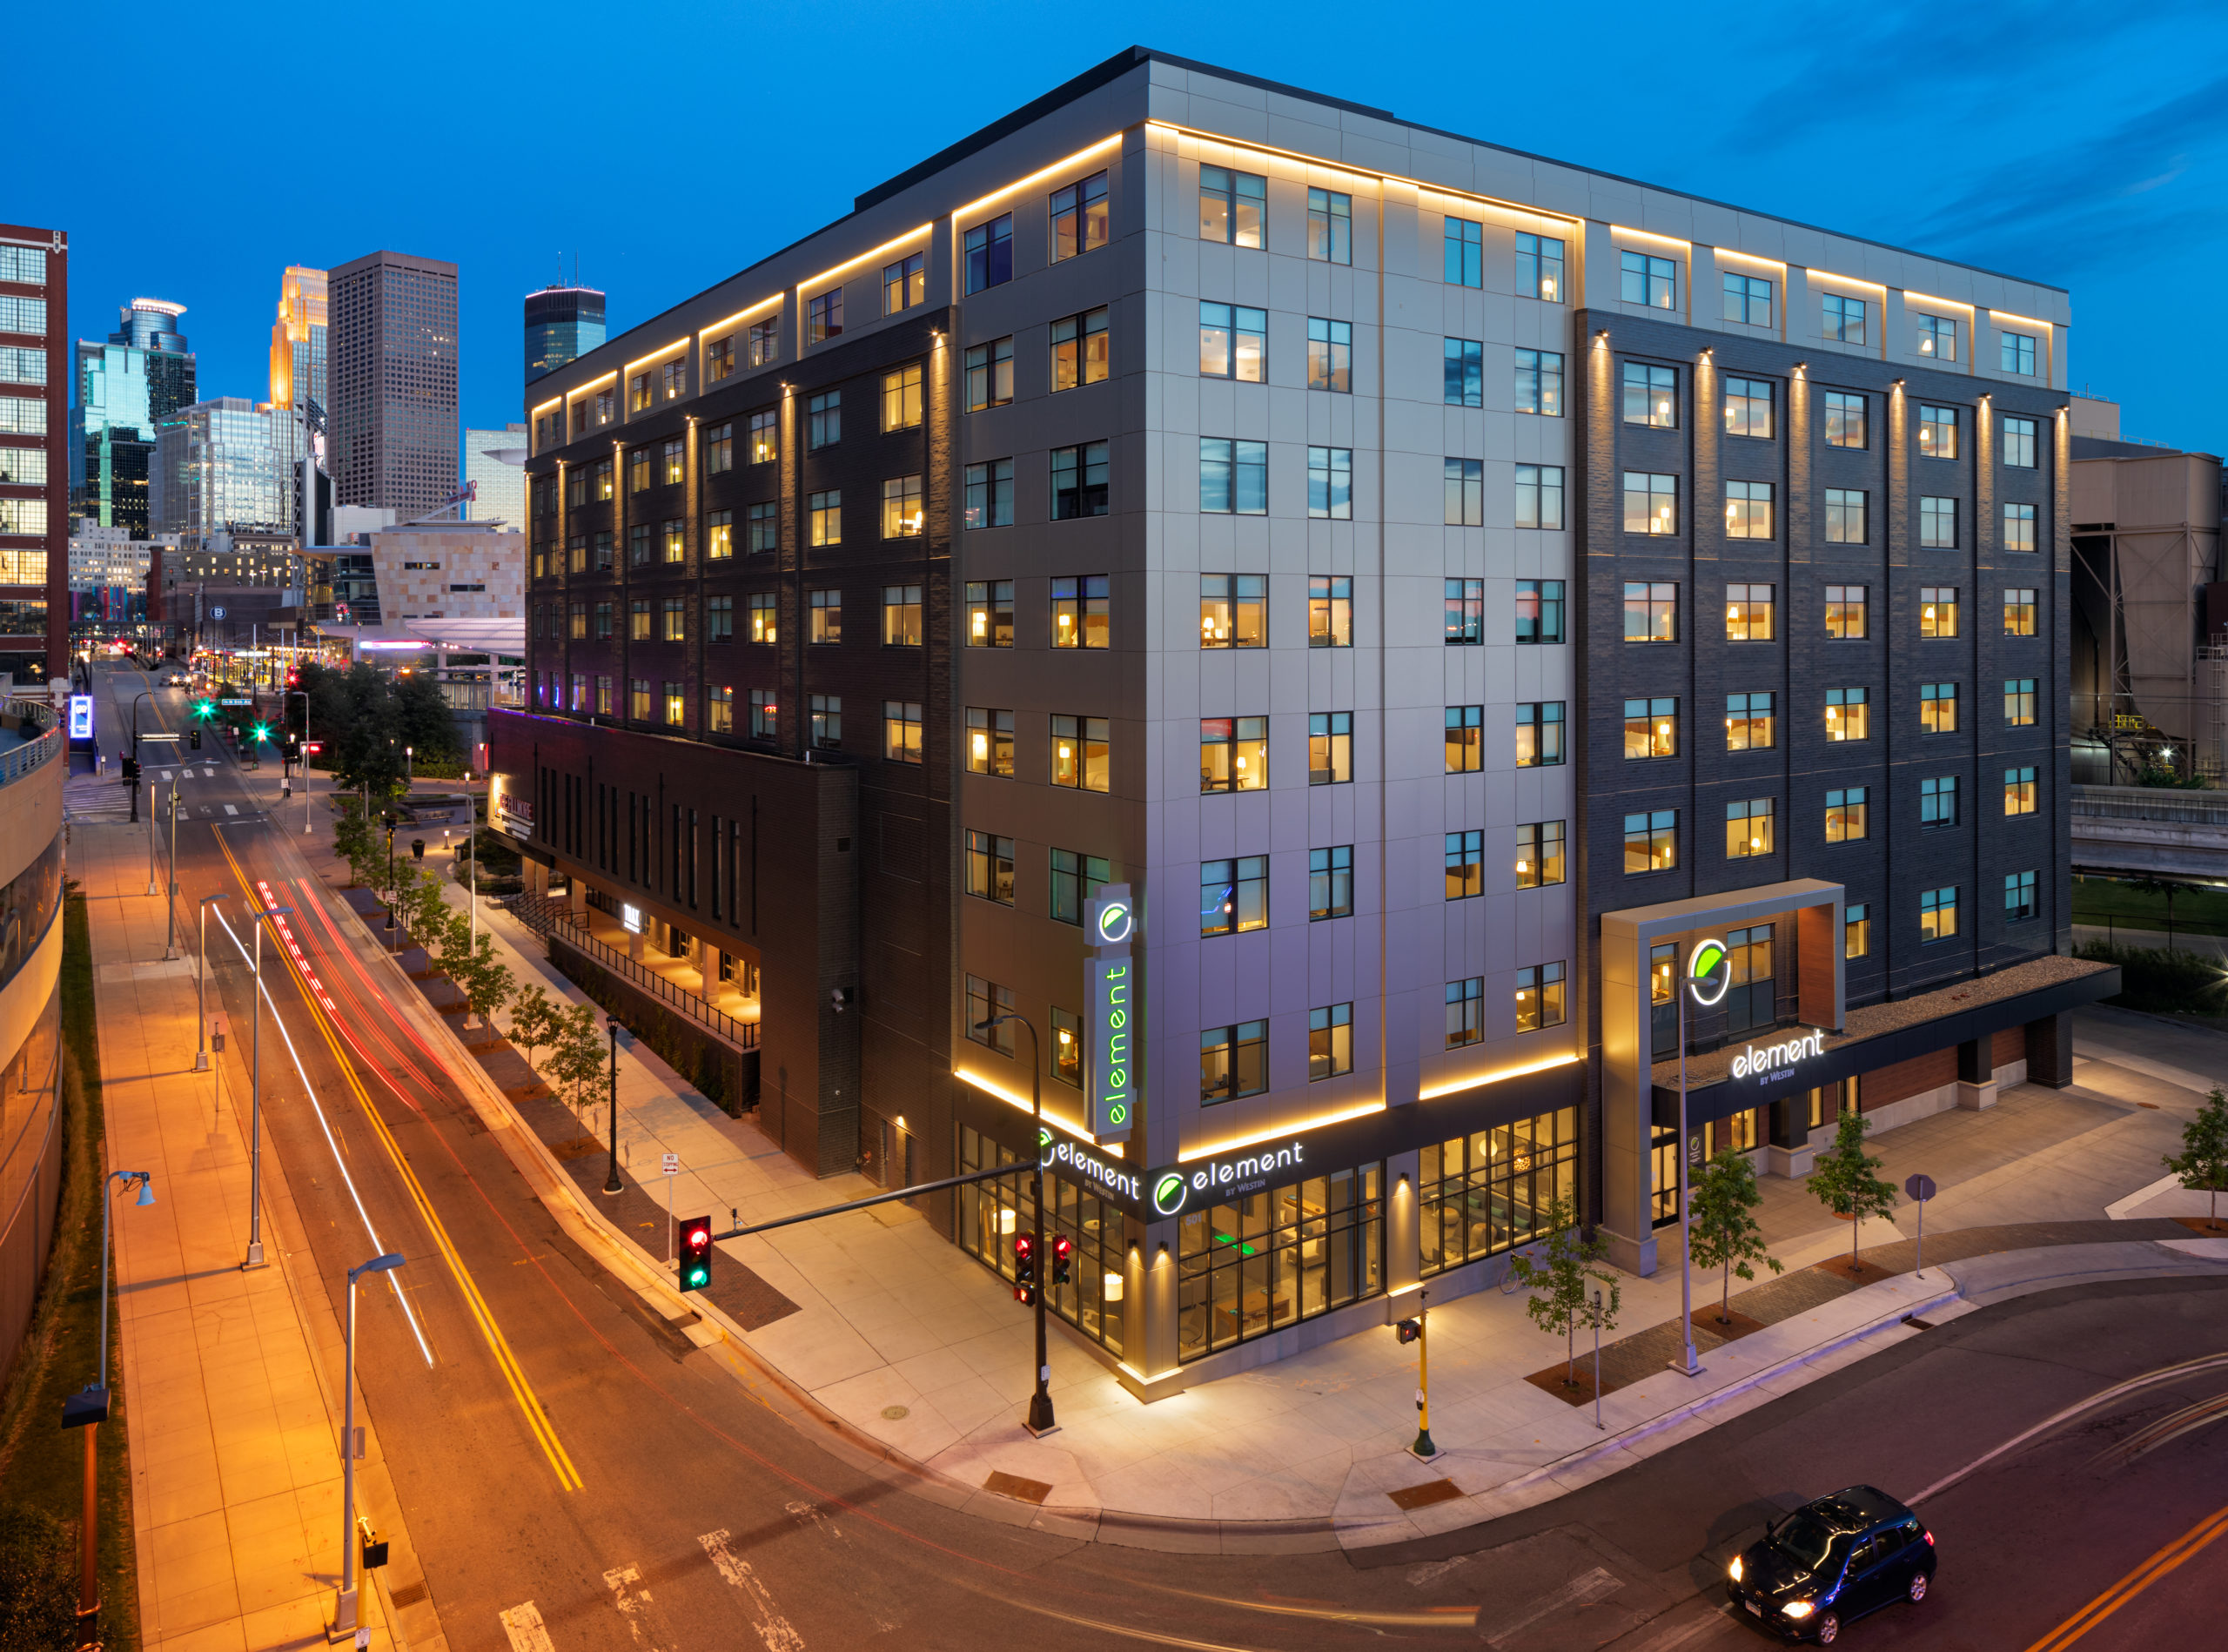 The brand-new Element Minneapolis Downtown. Situated in the vibrant Warehouse District, the hotel is perfectly positioned for exploration around North Loop. Adjacent to the Light Rail, Target Field and The Fillmore Minneapolis, and just a few moments from U.S. Bank Stadium, Target Center and downtown arts and entertainment options.